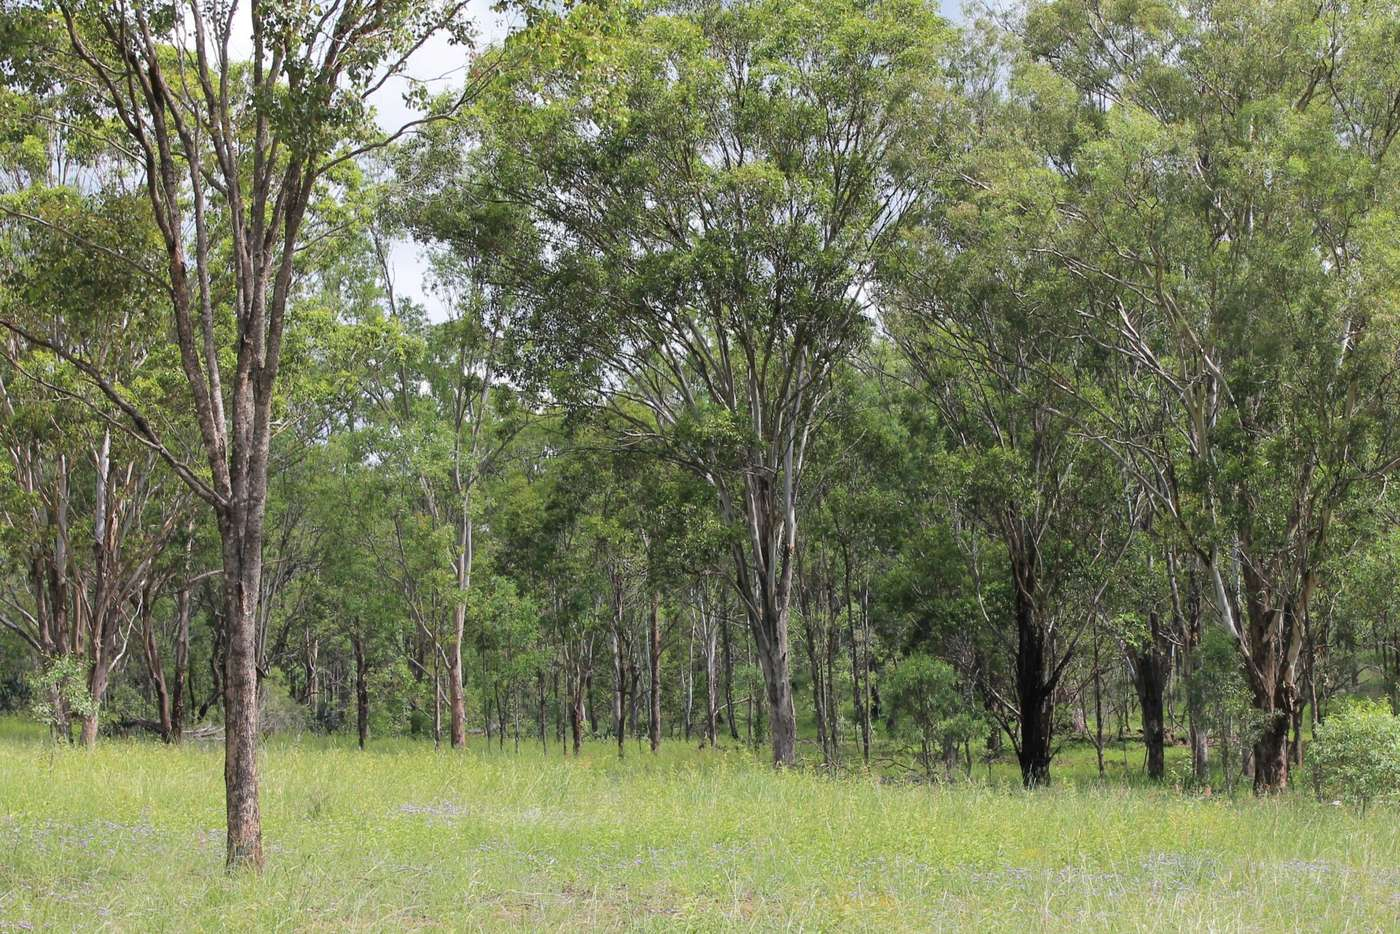 Main view of Homely residentialLand listing, Lot 1 Leyburn-Cunningham Road, Wheatvale QLD 4370